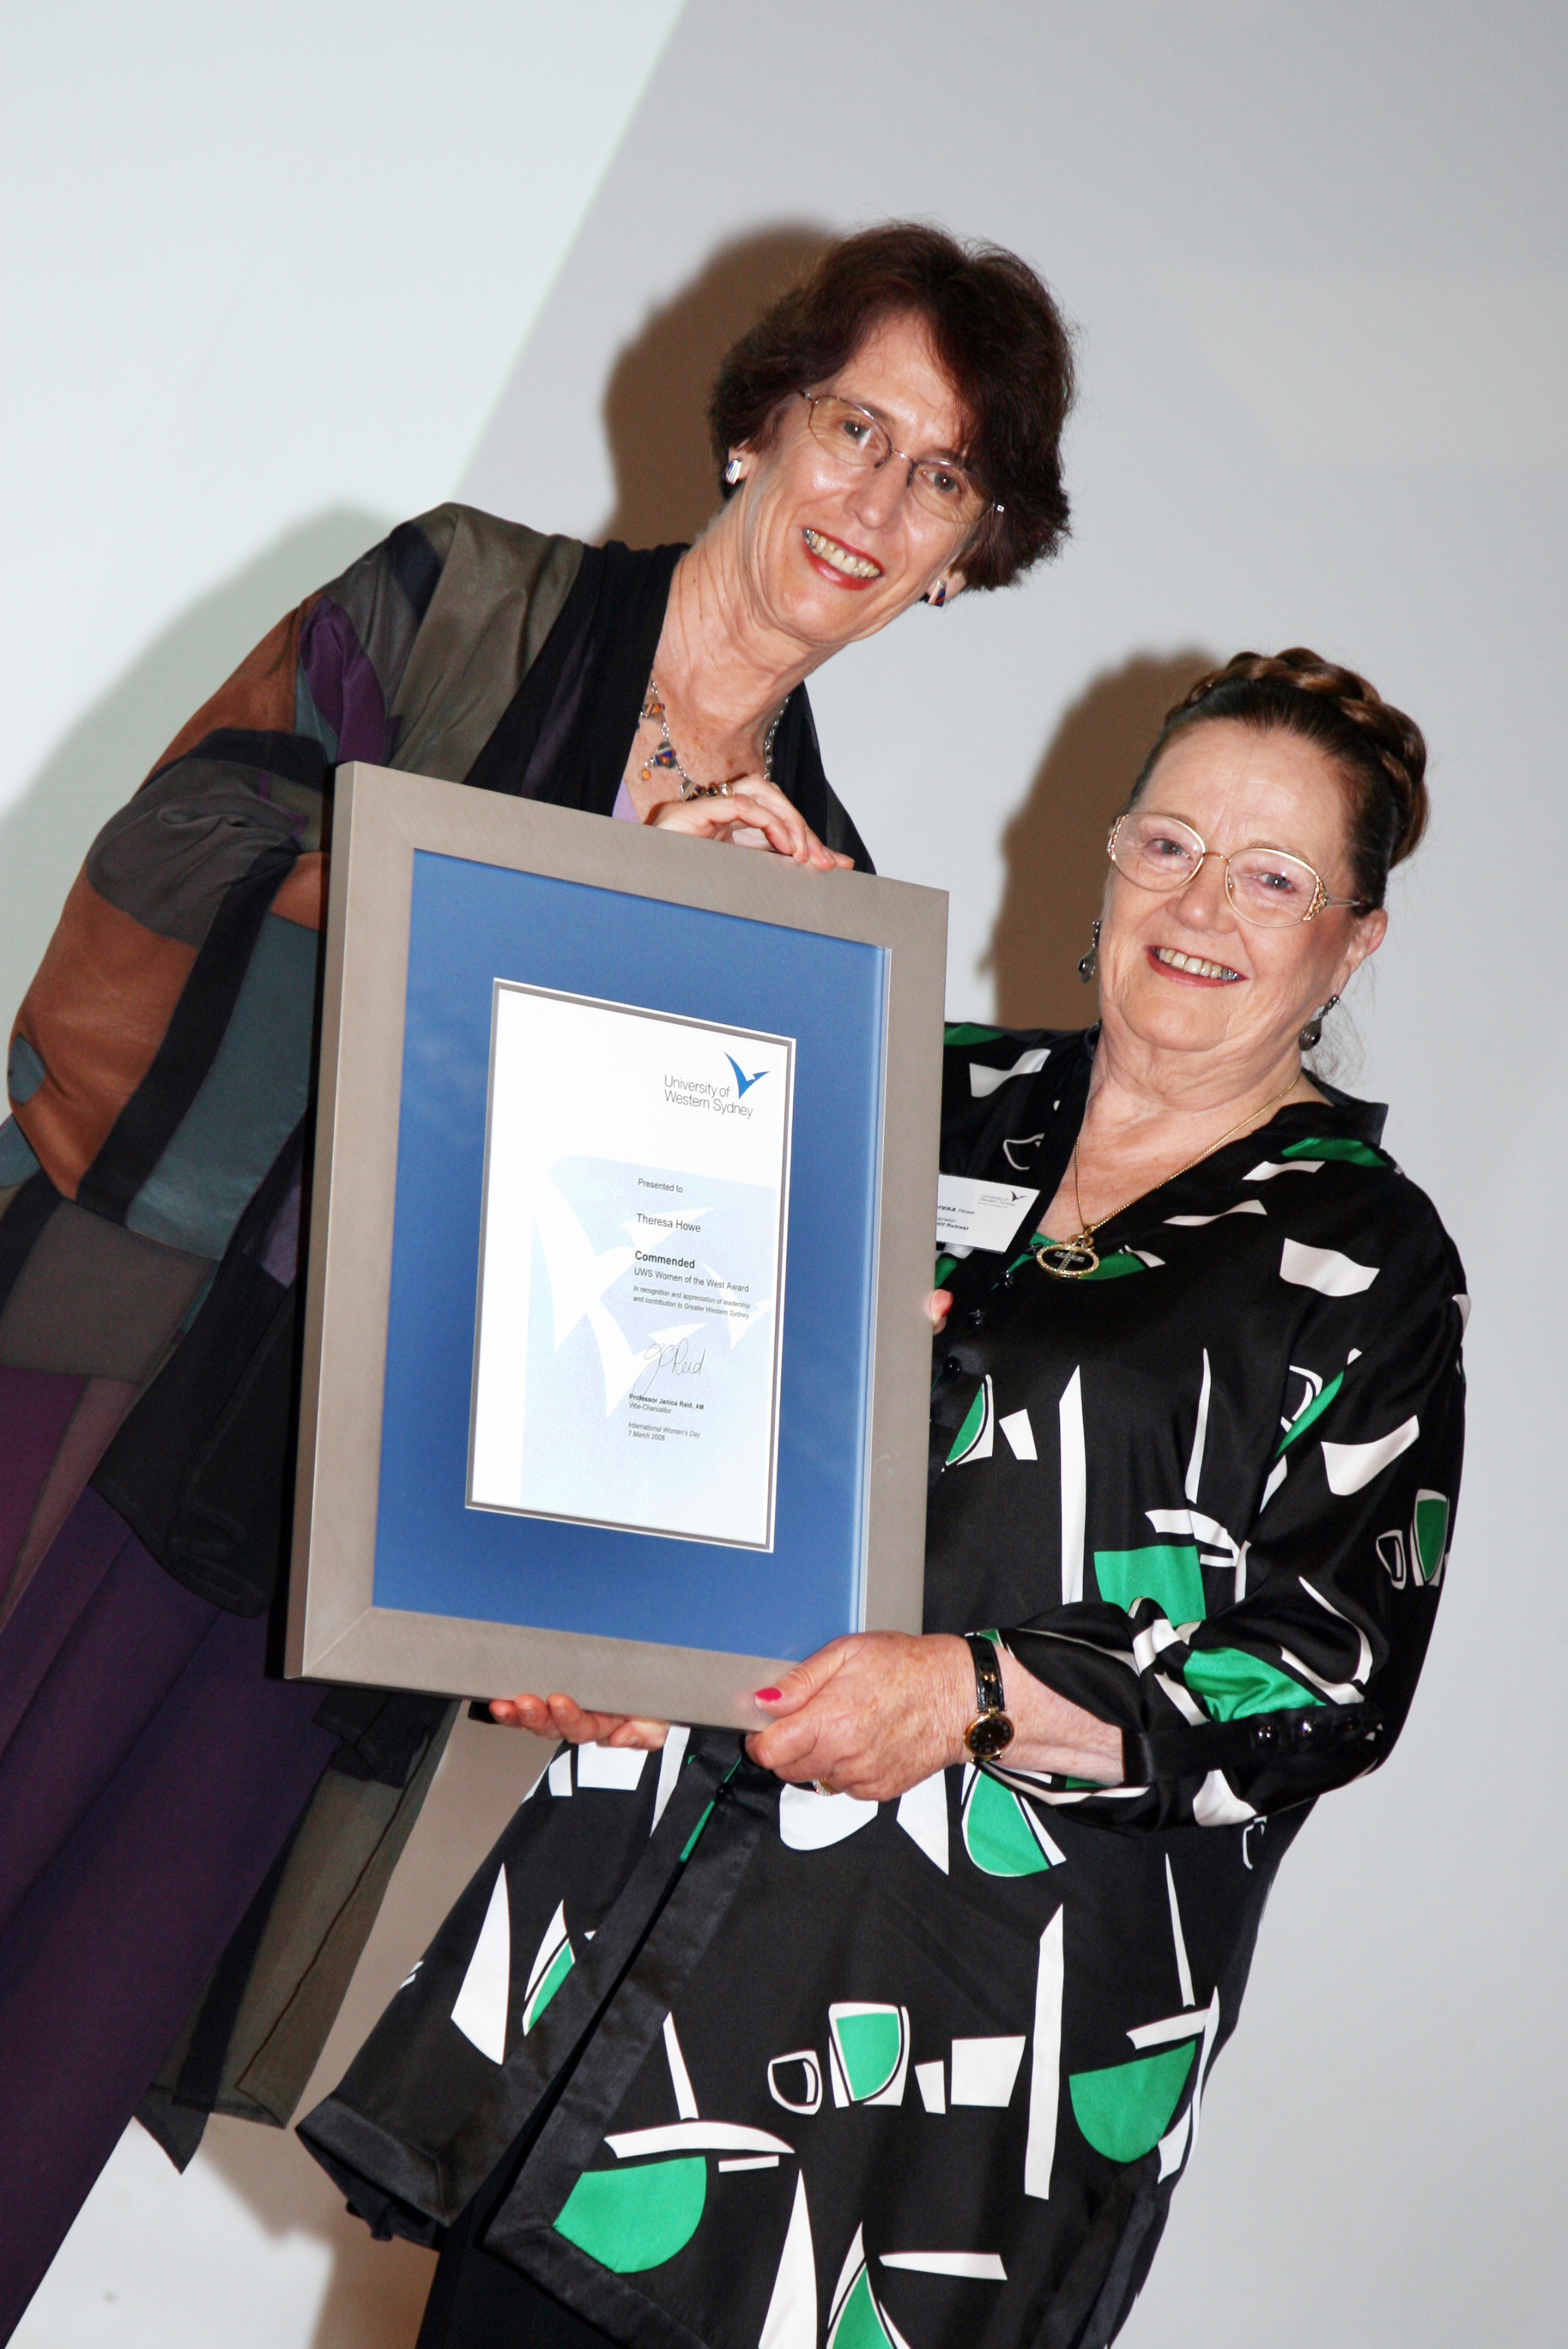 Vice-Chancellor Professor Janice Reid AM presents Theresa with the Commended Award.